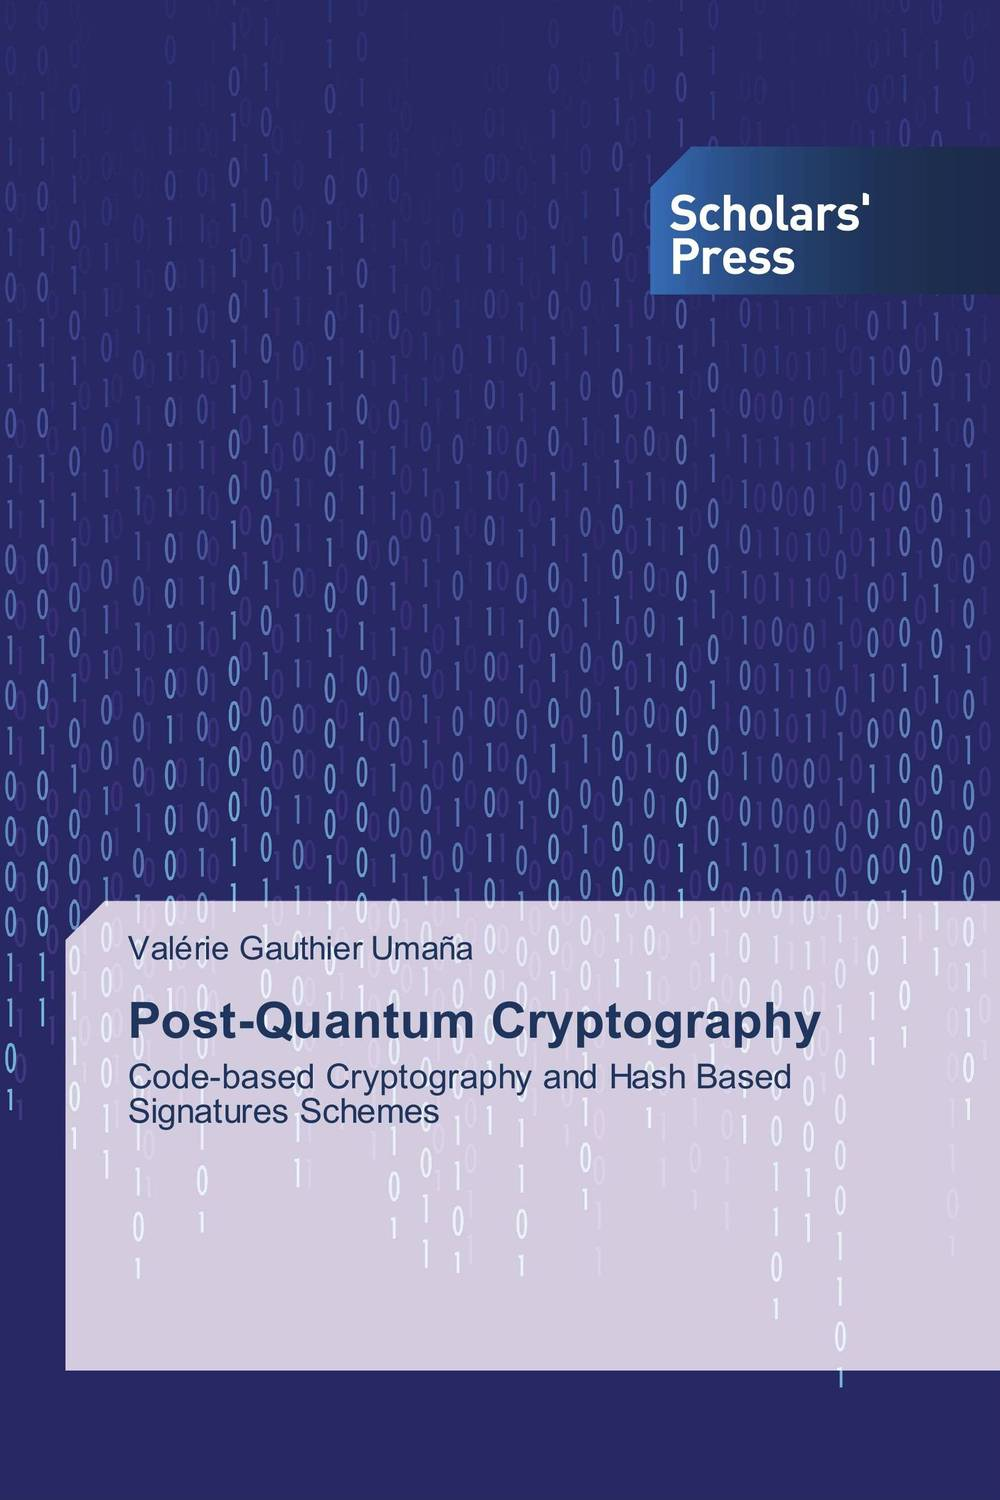 все цены на Post-Quantum Cryptography онлайн